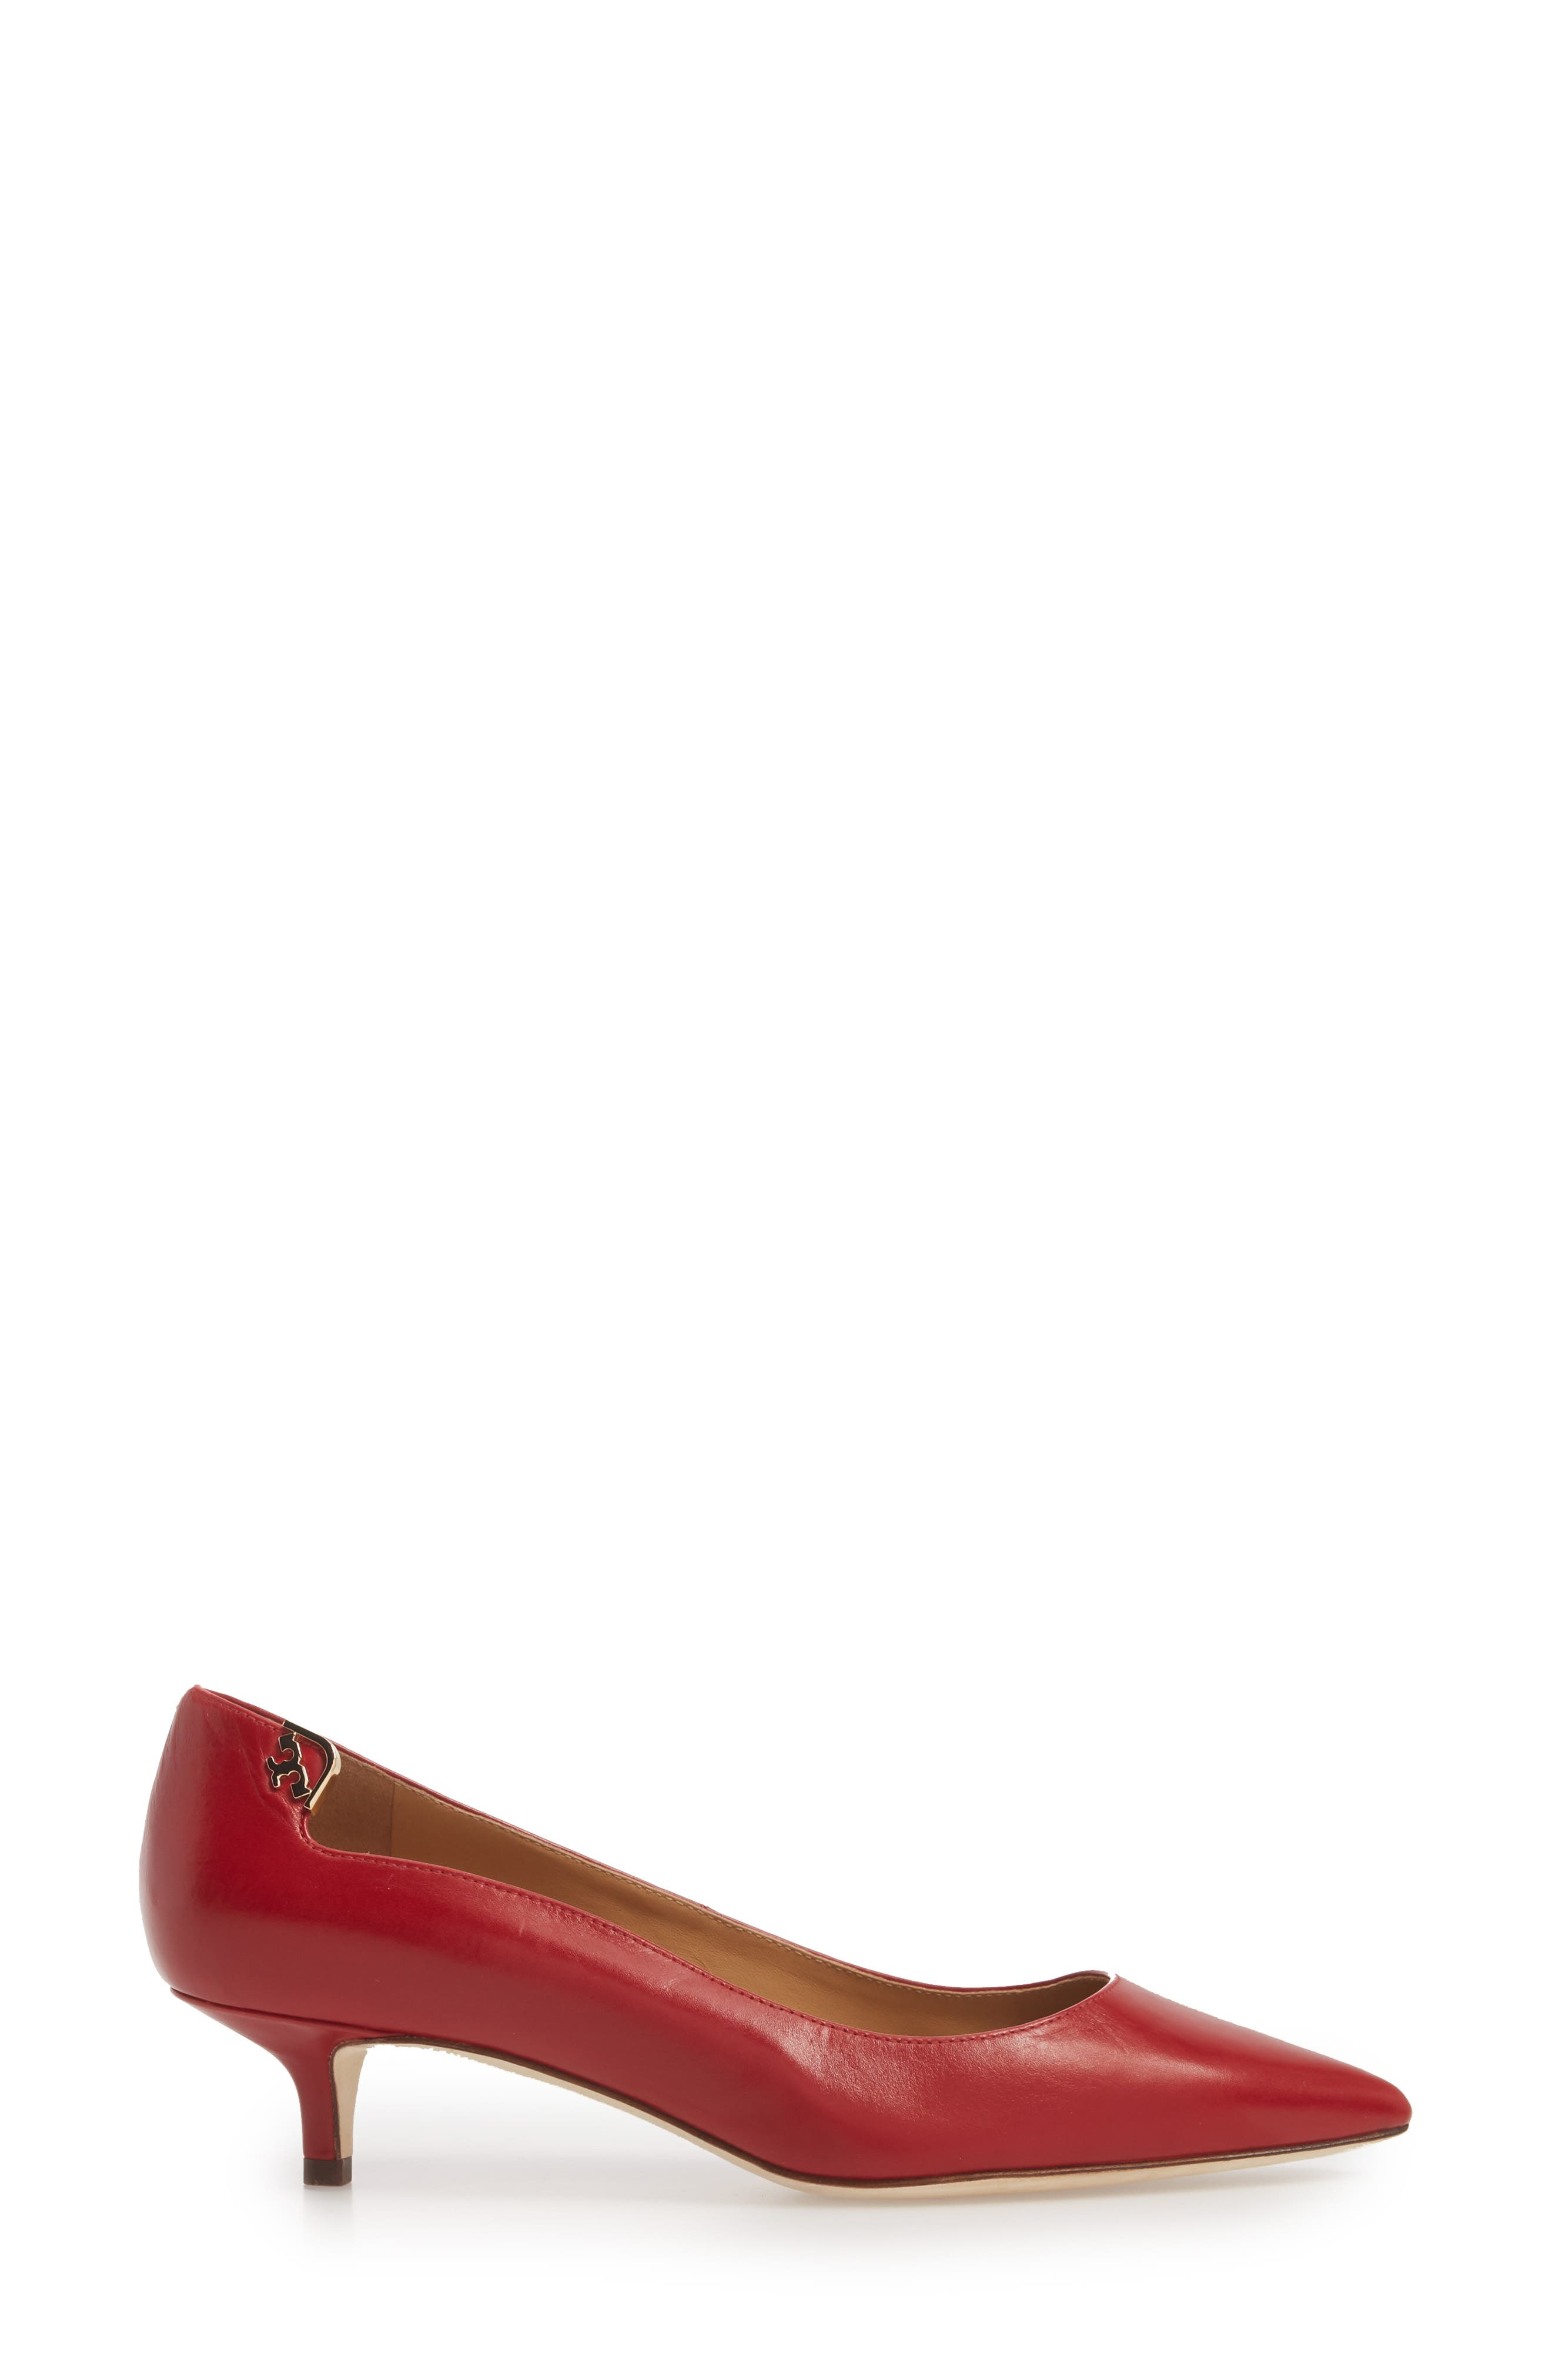 TORY BURCH,                             Elizabeth Pointy Toe Pump,                             Alternate thumbnail 3, color,                             601